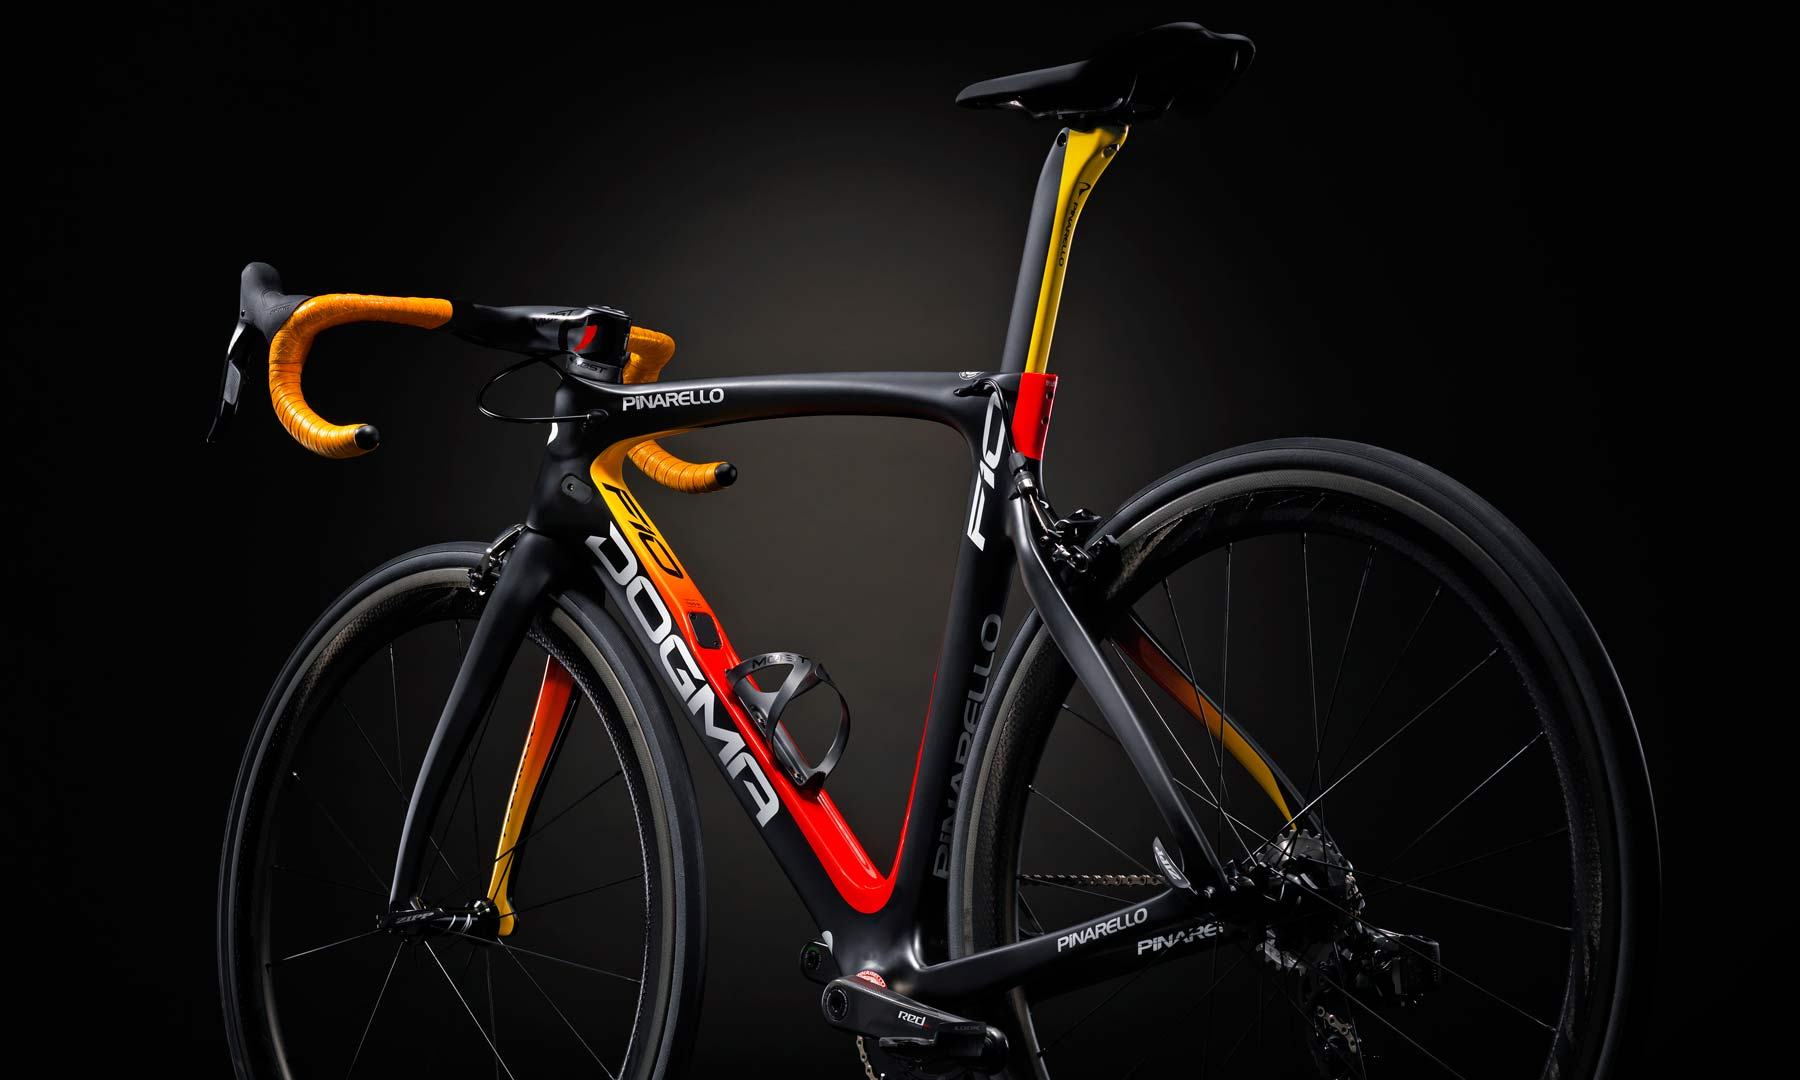 2018_Pinarello-Dogma-F10_gradient-fade-carbon-road-race-bikes_Ambra-rear-end